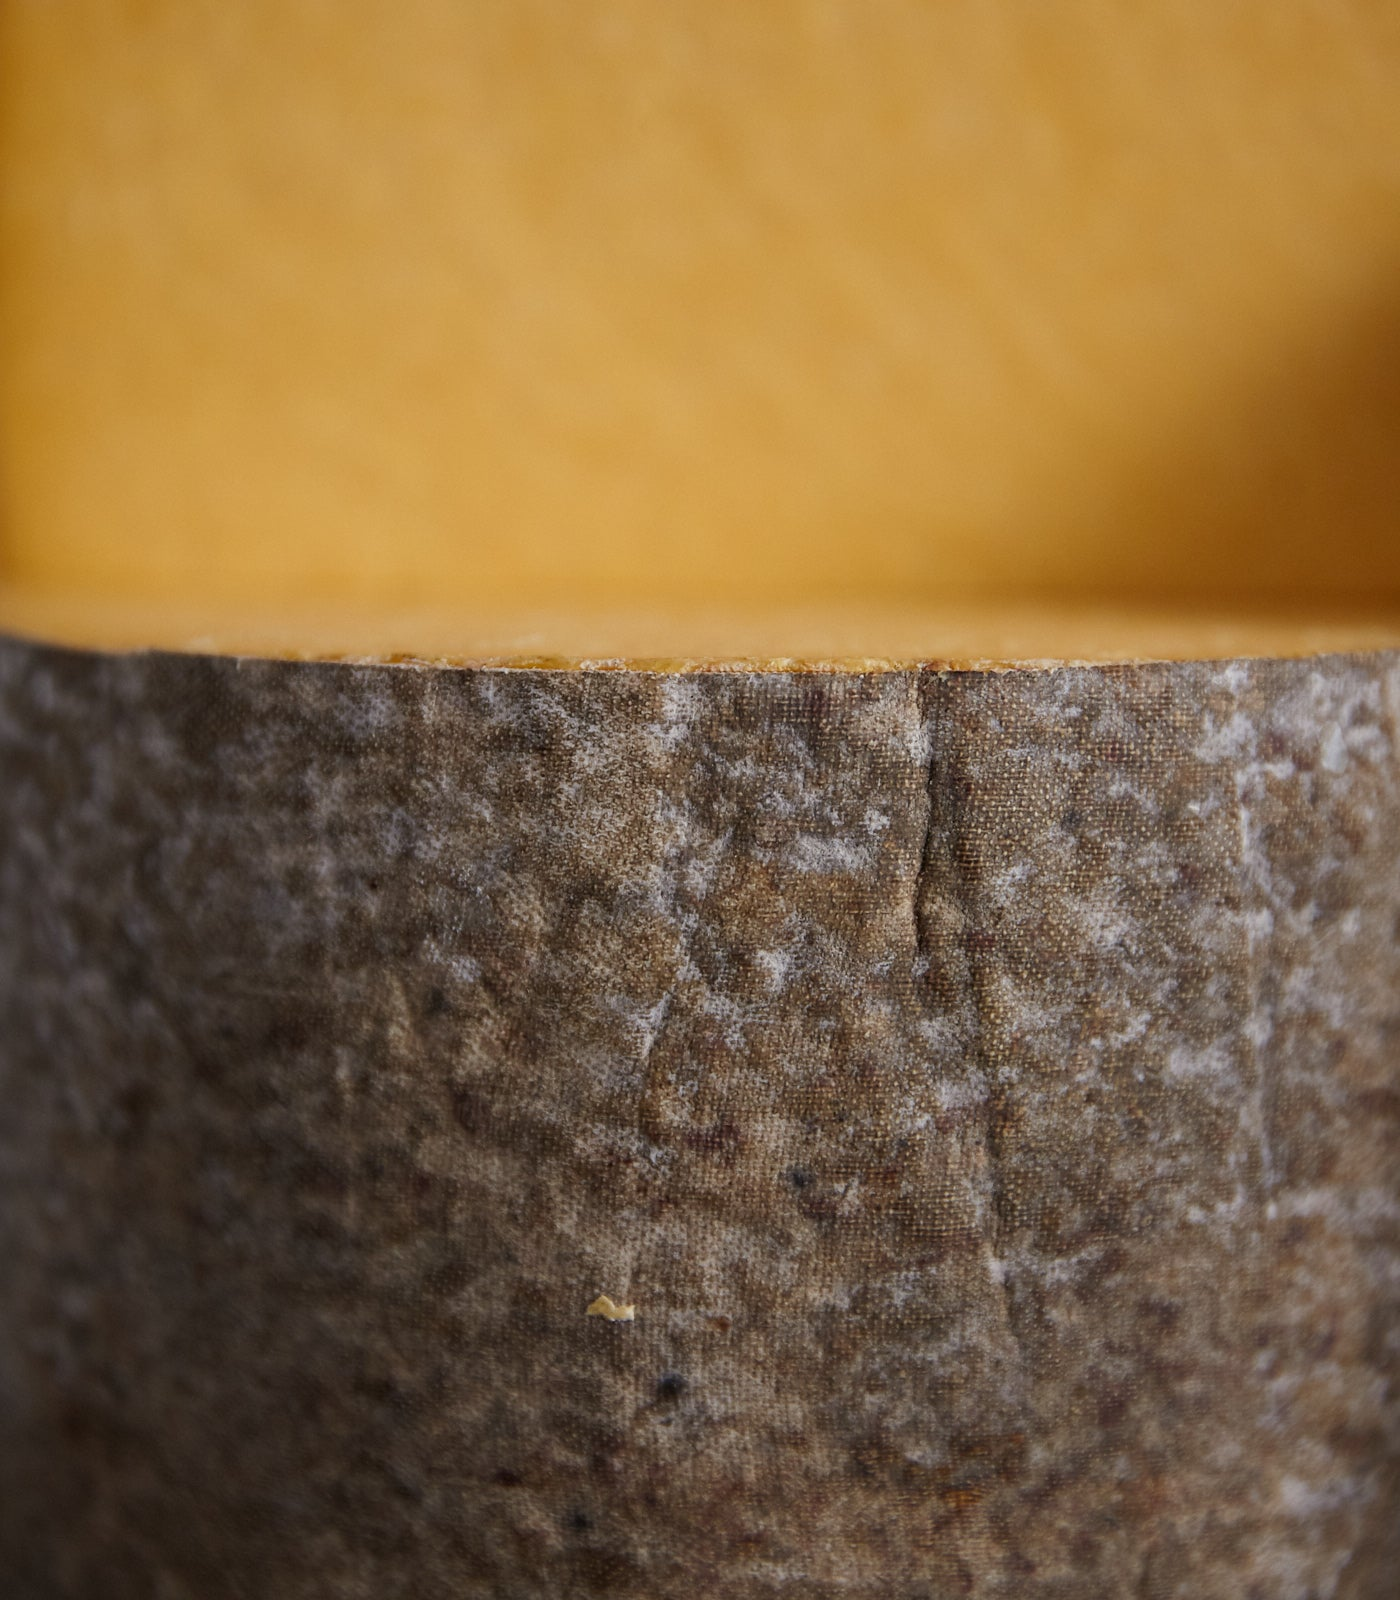 Close up of a cut wheel Appleby's Cheshire cheese showing cloth-bound casing and orange-coloured paste